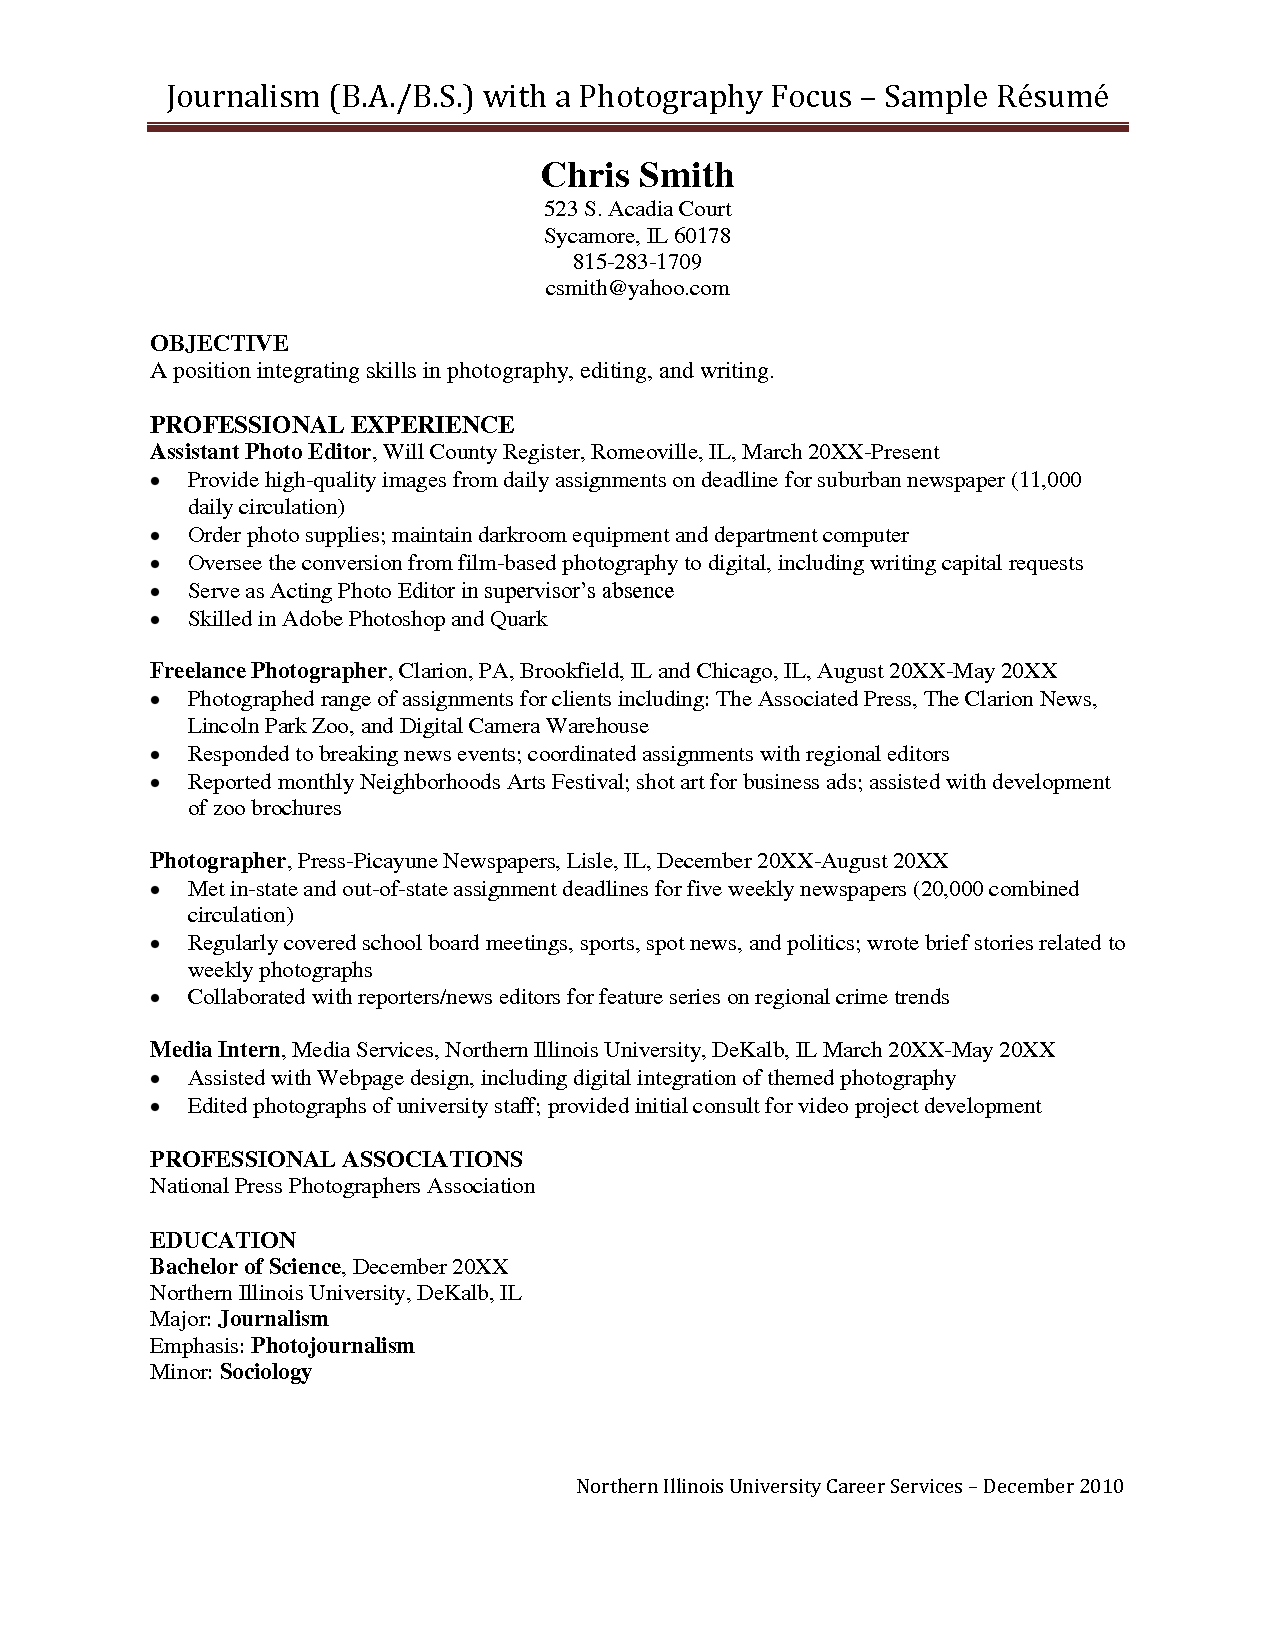 Photography Resume Template Scope Of Work Template  Research  Pinterest  Template